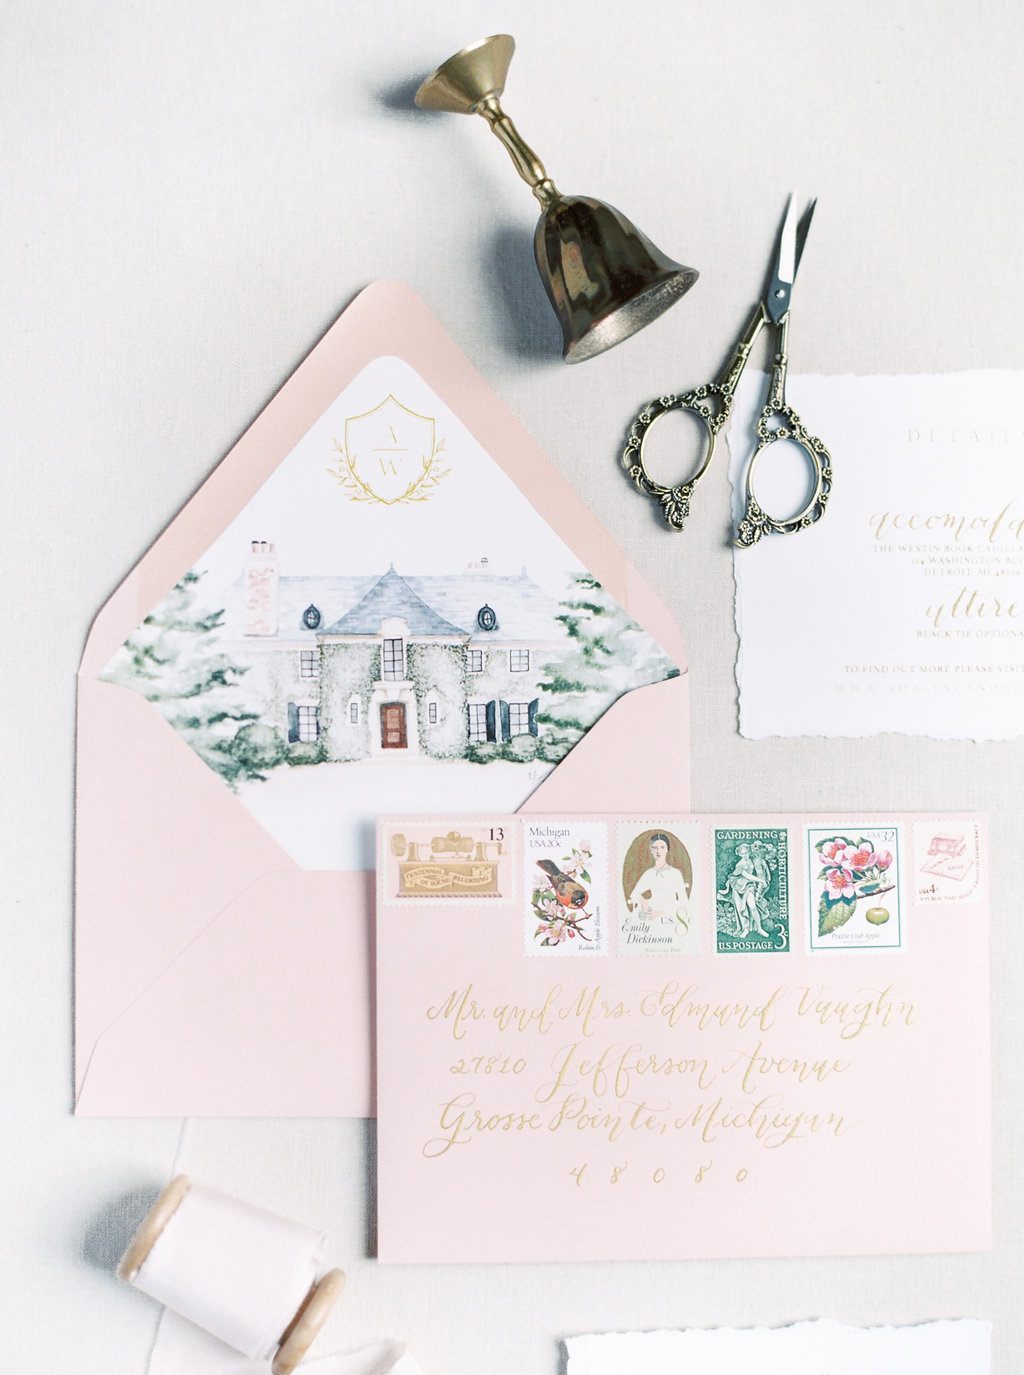 Personalize your wedding invitations with these custom and unique touches! A wedding venue illustration on your envelope liner is the perfect way to add some customized personality to your wedding suite. #customweddinginvitations #weddinginvitations #whimsicalwedding #fineartwedding #fineartdesign #venueillustration